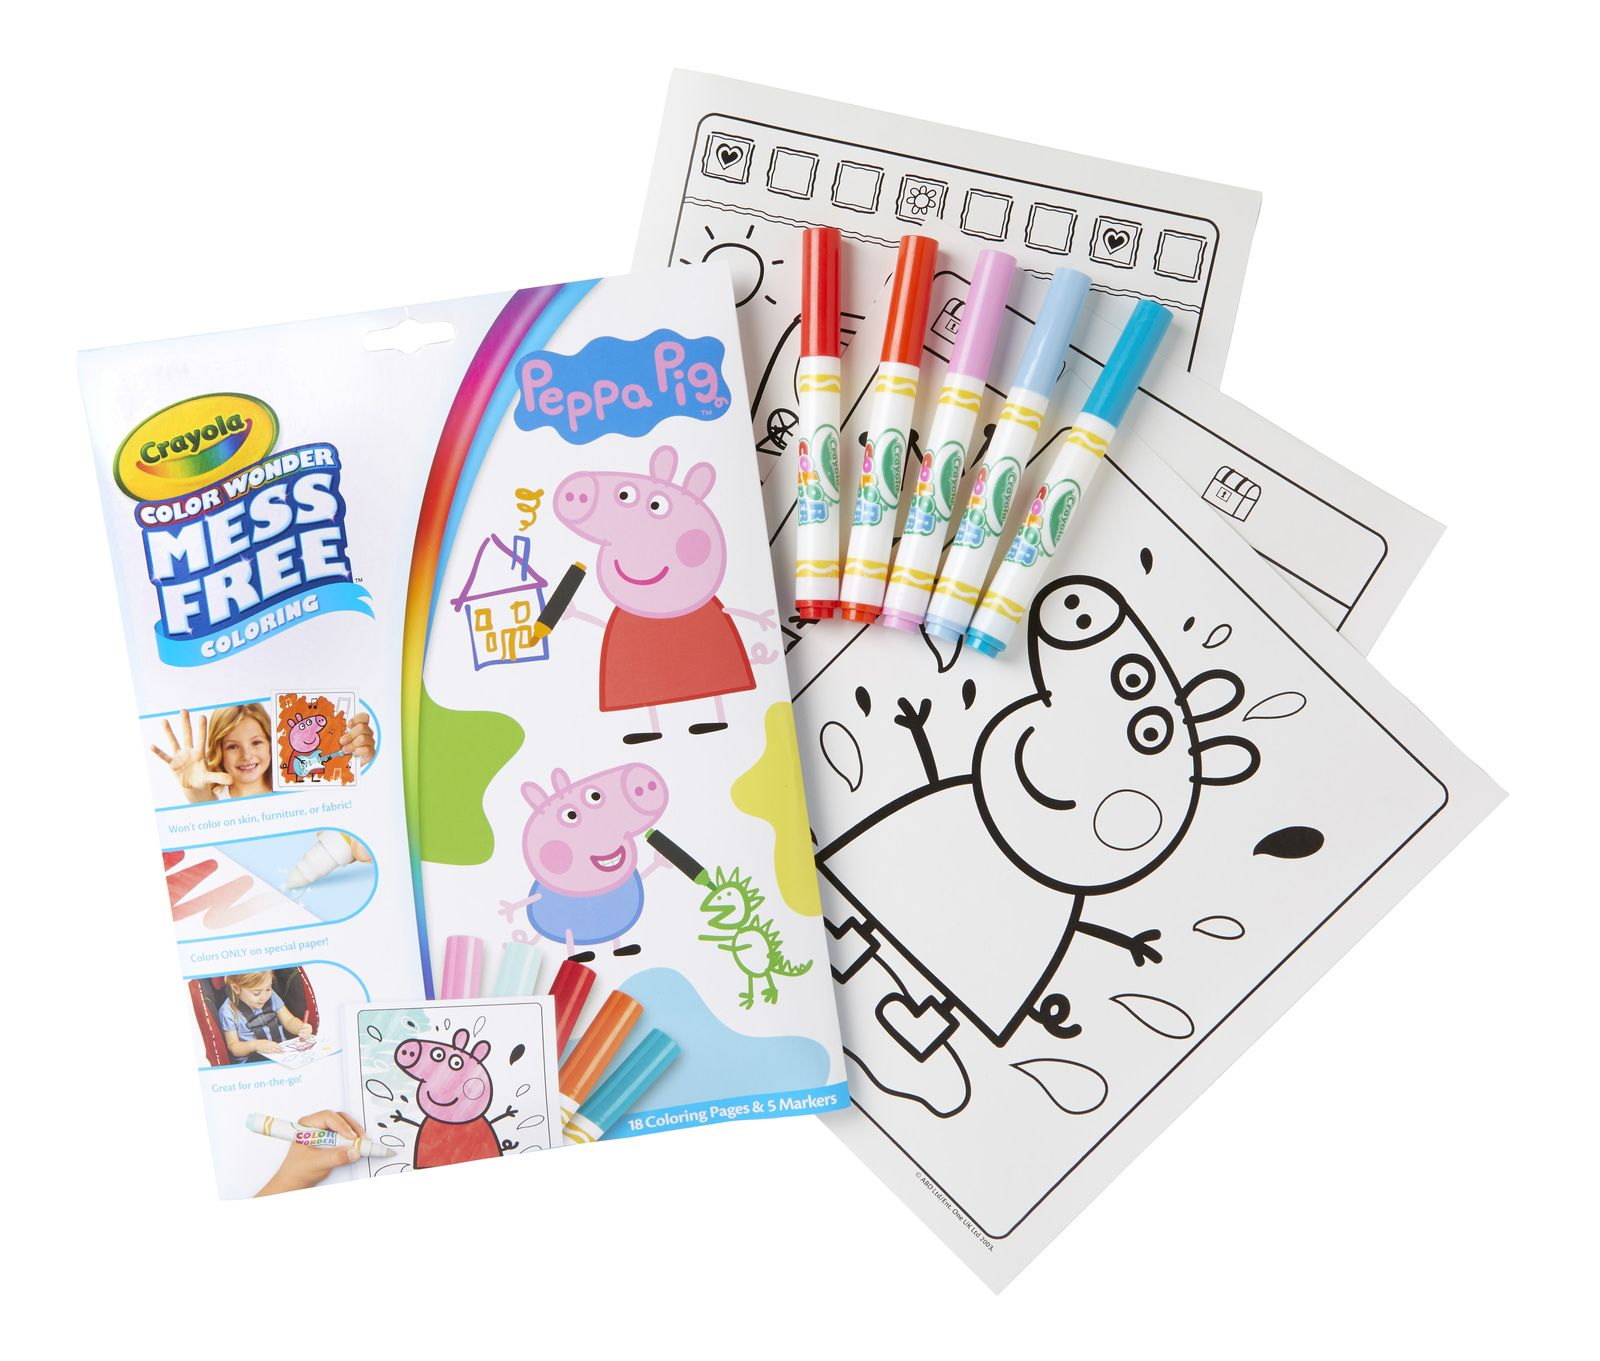 Crayola Colour Wonder Colouring Set Peppa Pig In 2020 Peppa